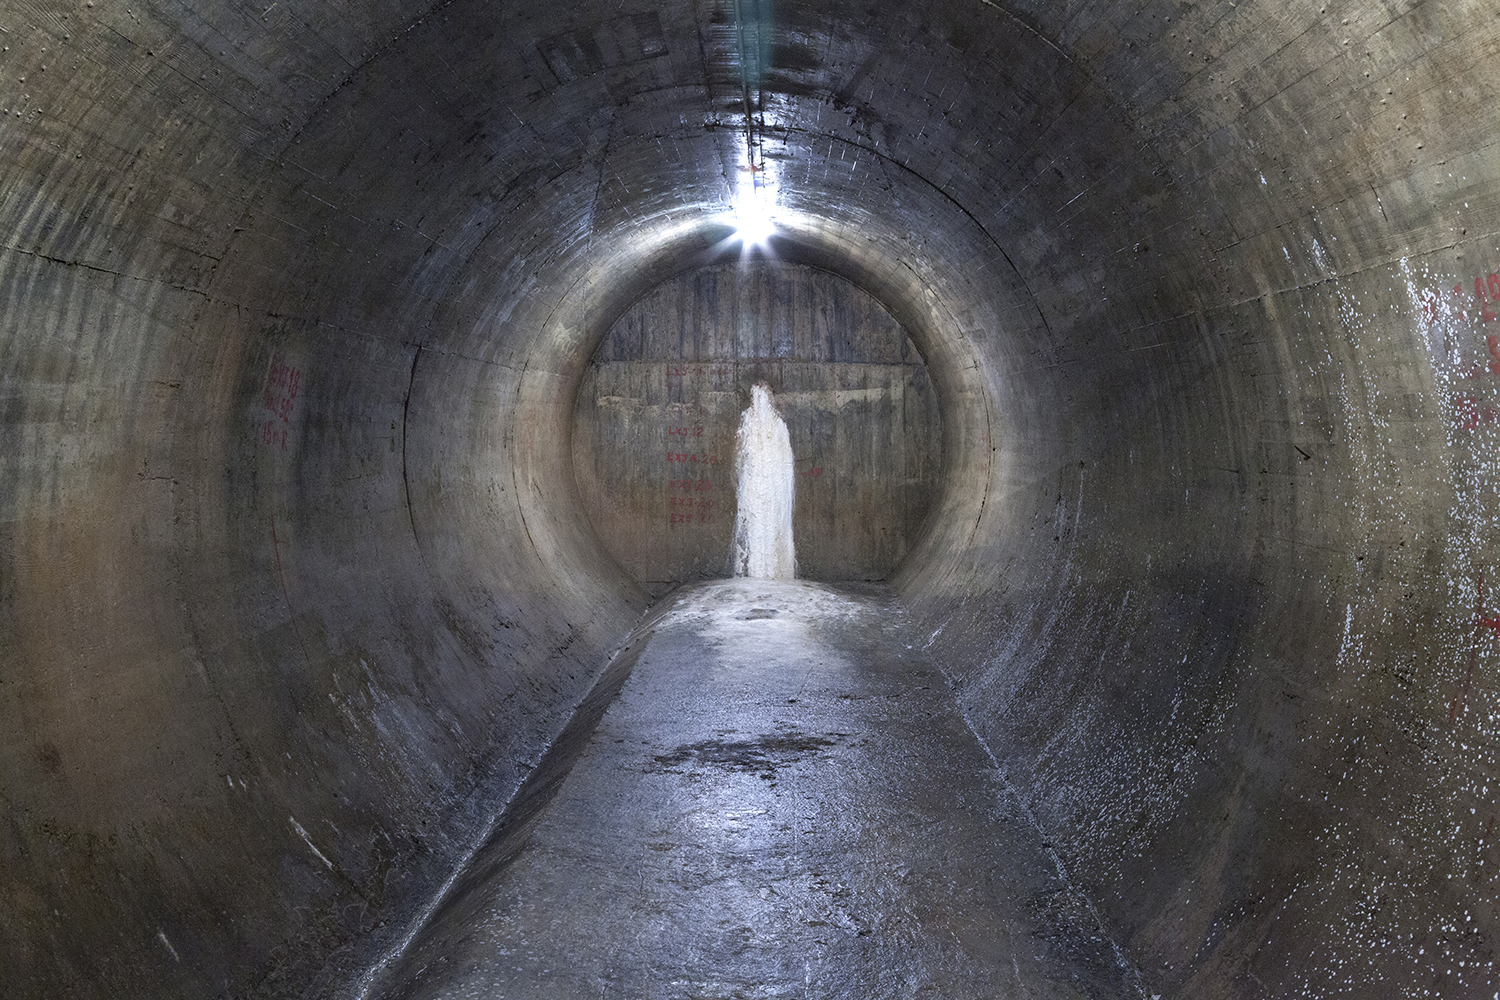 carina martins, vortex - tunnel dam tunel with calcarious in a form of a saint